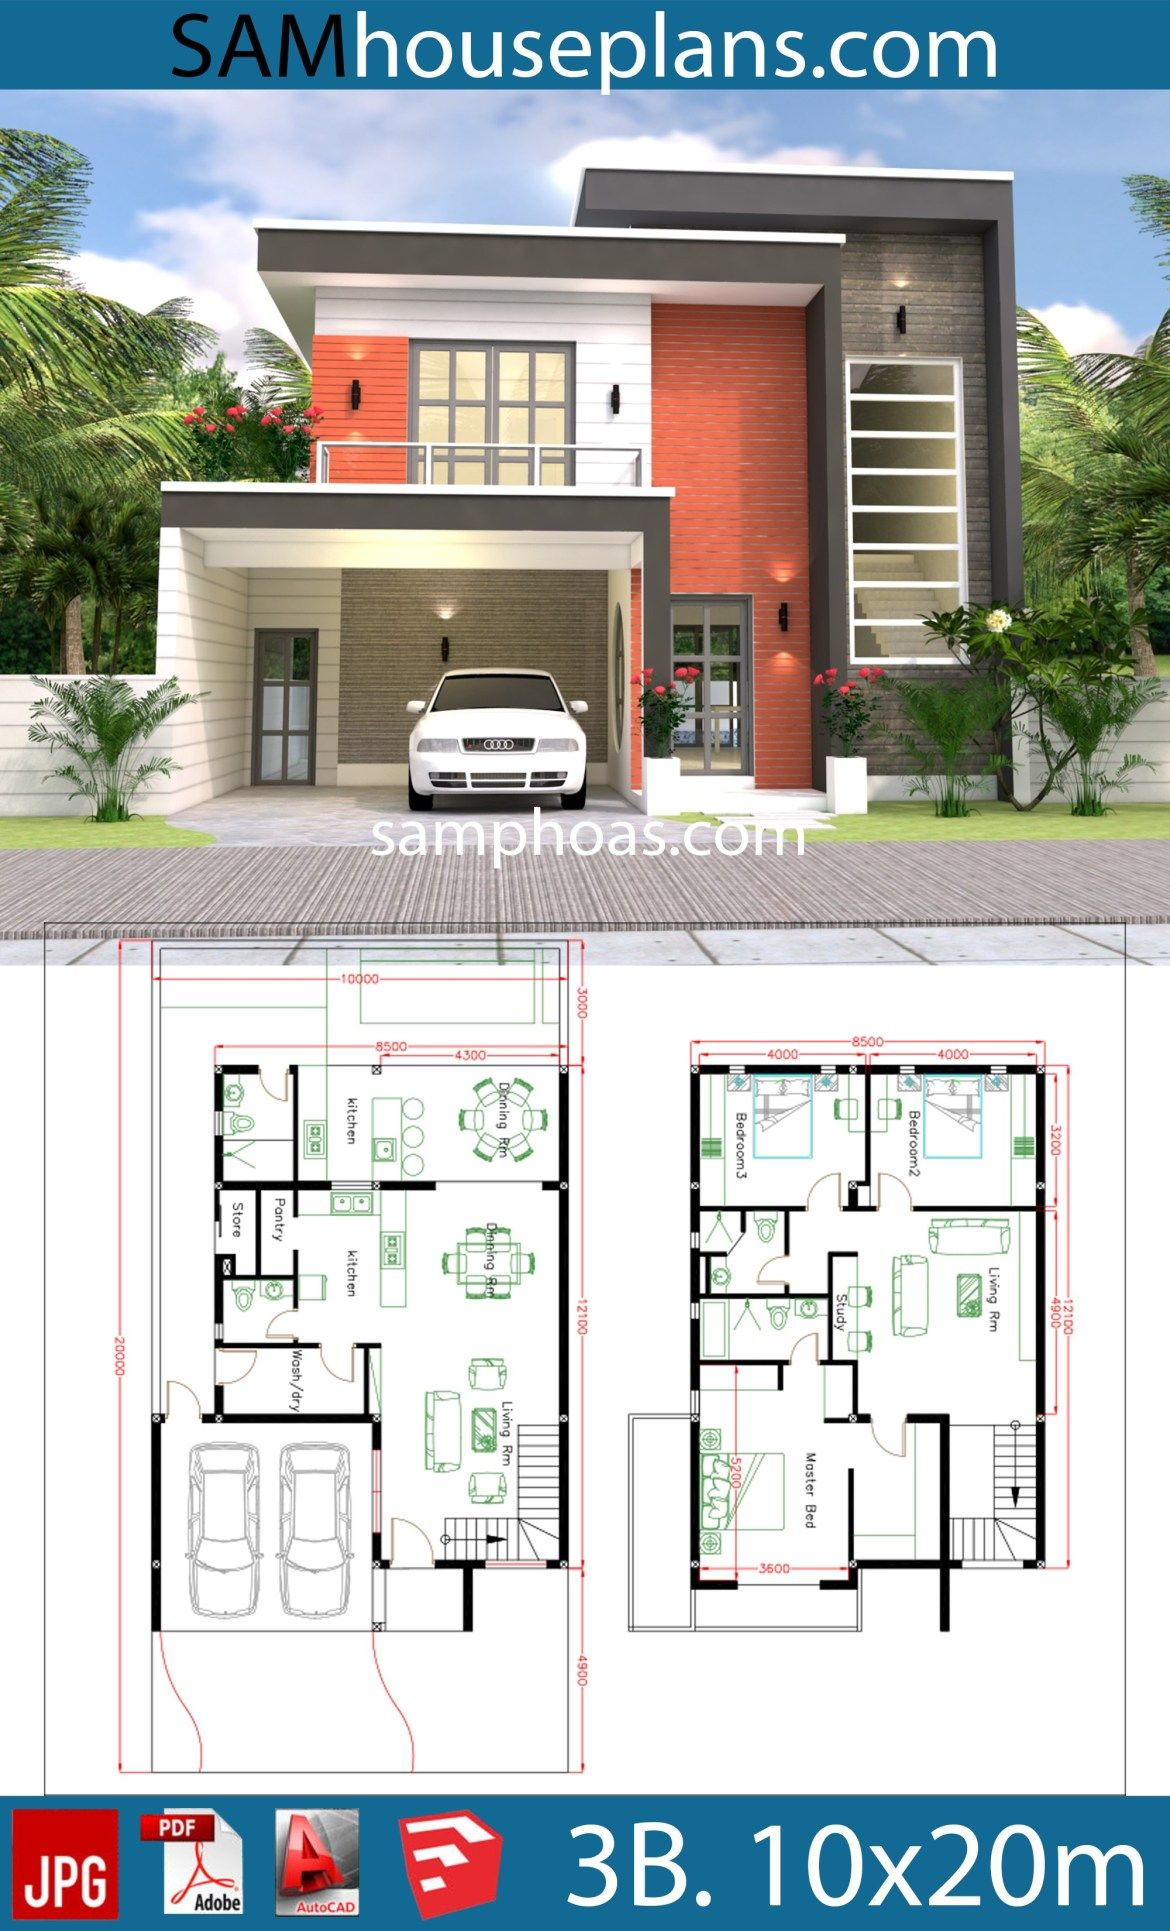 3d House Design Plans With 3 Bedrooms Plot 10x20m Samphoas Plansearch Duplex House Design Duplex House Plans House Layouts